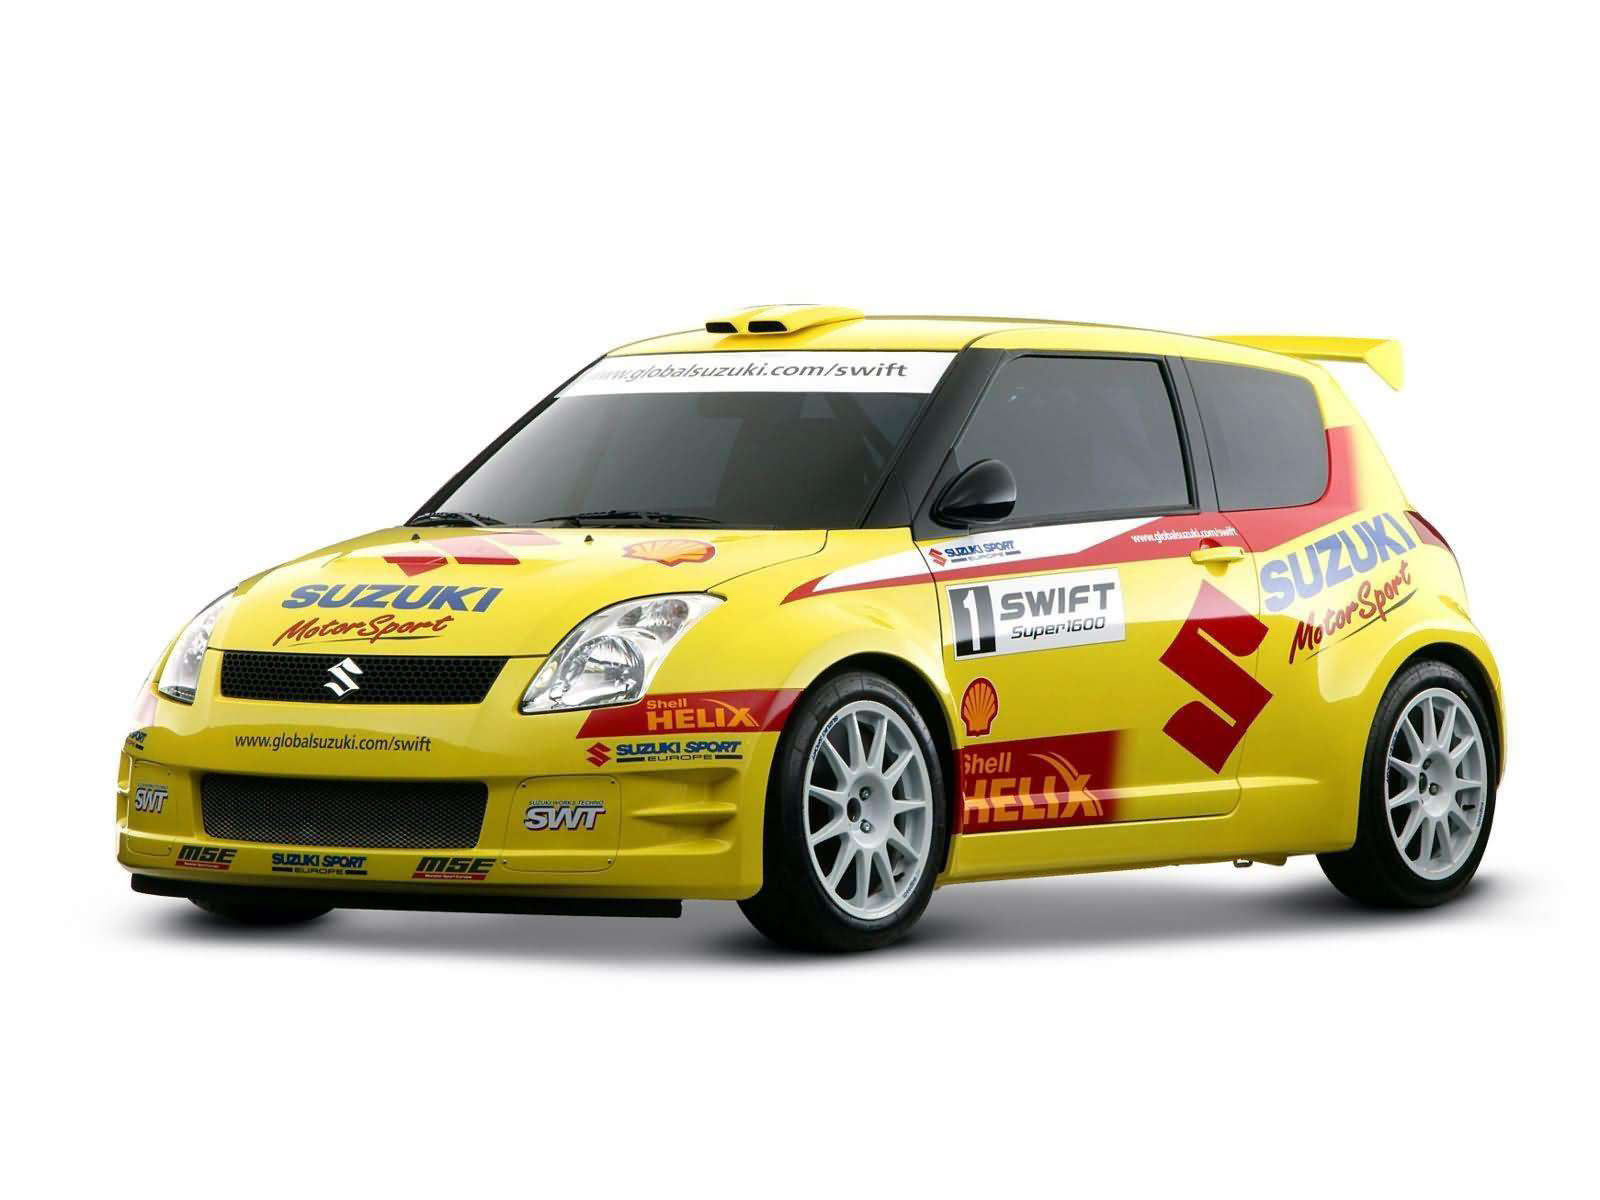 MK4 Rally Car  SUZUKI Swift  Pictures